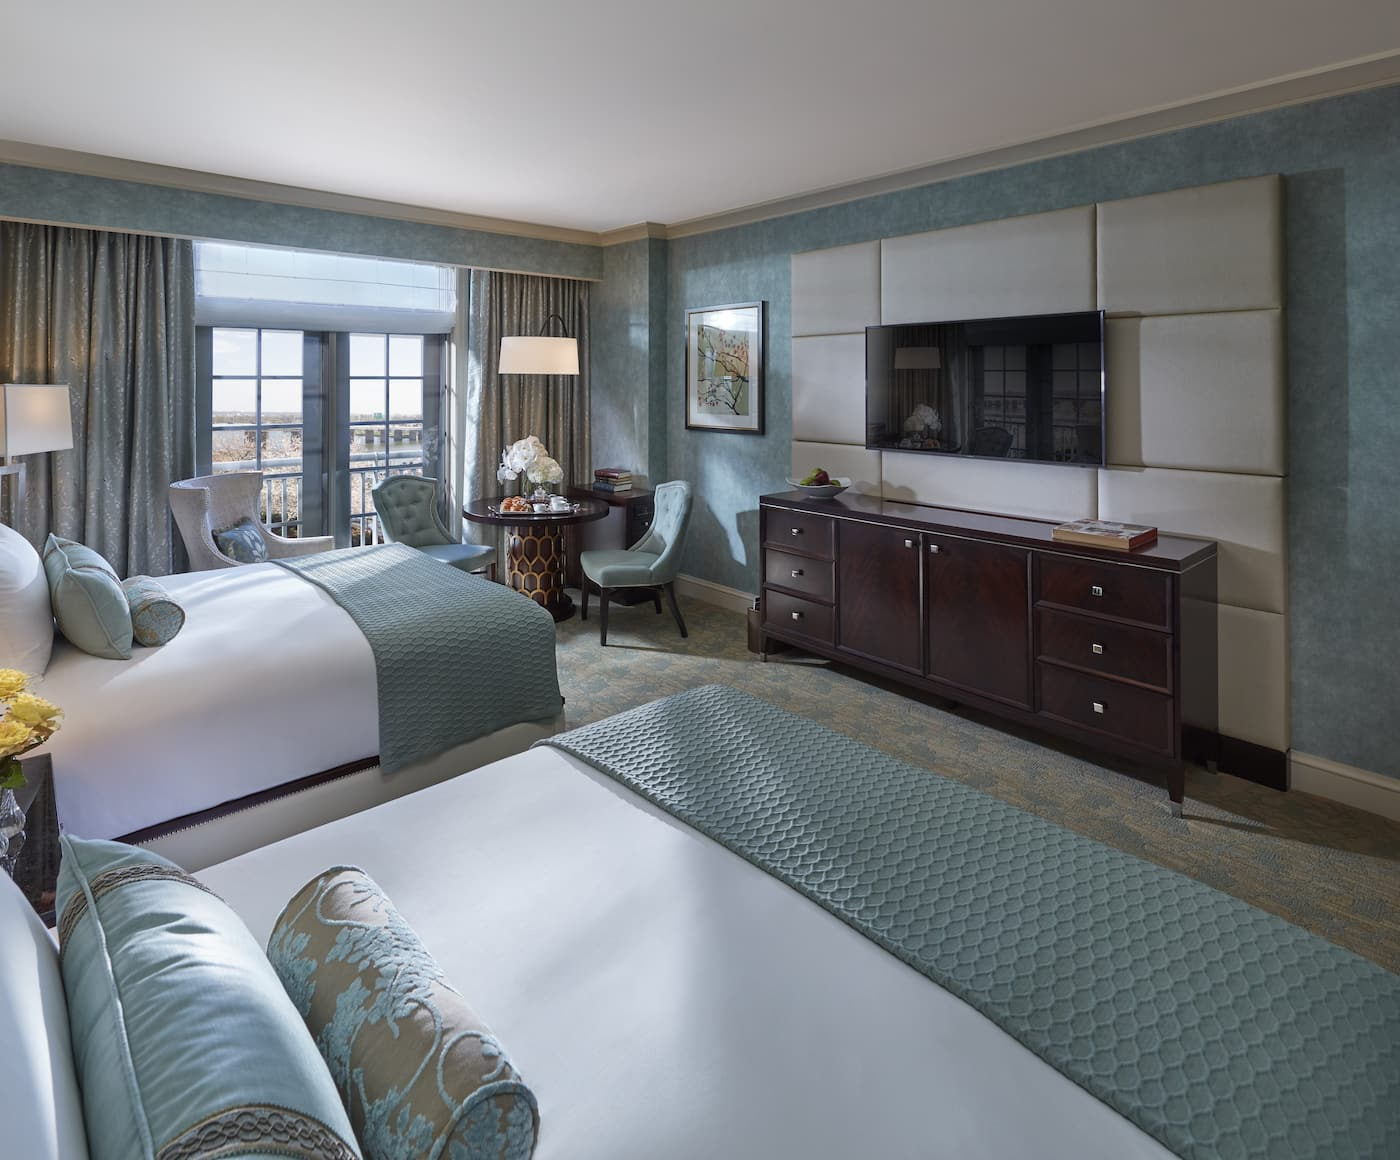 Luxury 5 star hotel national mall mandarin oriental washington d c for 2 bedroom suite hotels washington dc